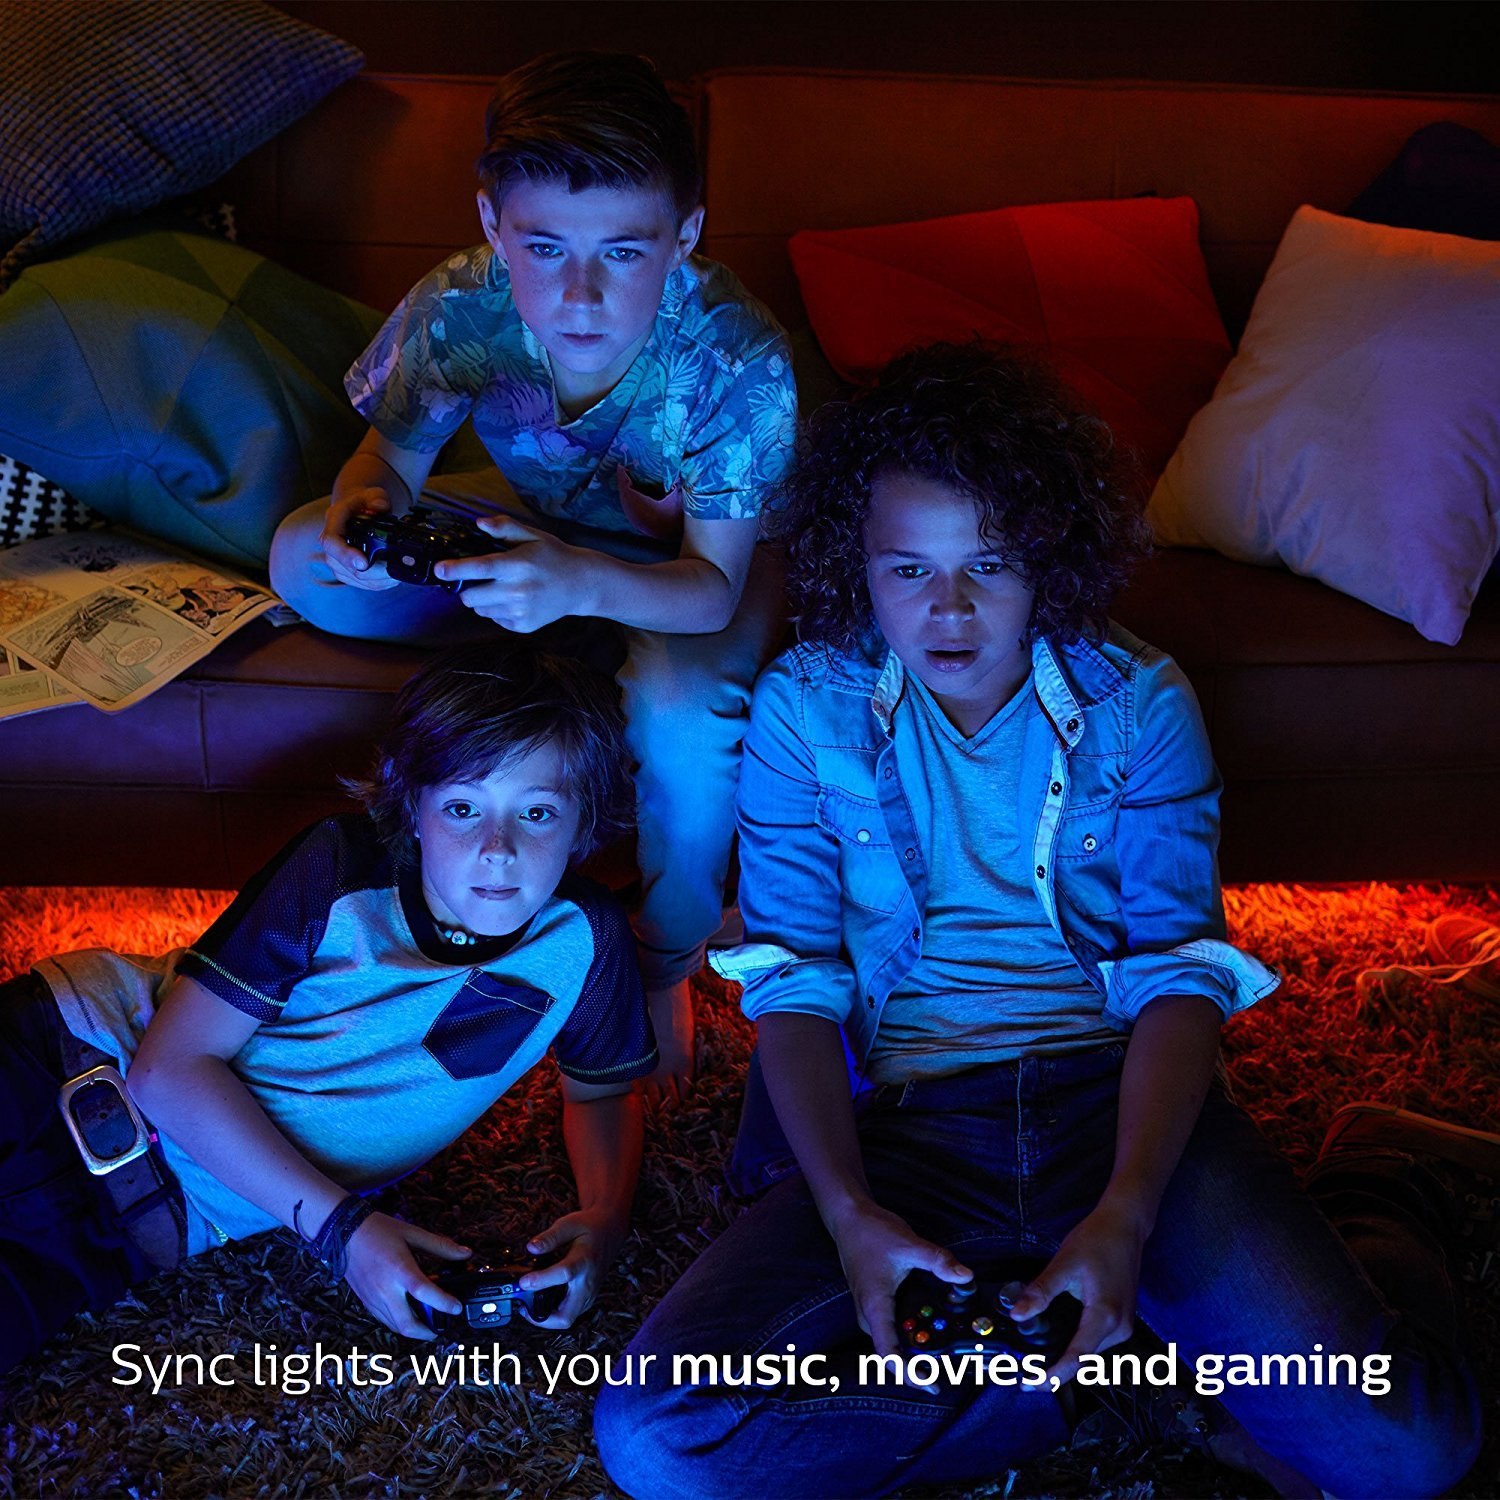 Philips Hue 464479 60W Equivalent White and Color Ambiance A19 Starter Kit, 3rd Generation, Works with Amazon Alexa by Philips (Image #7)